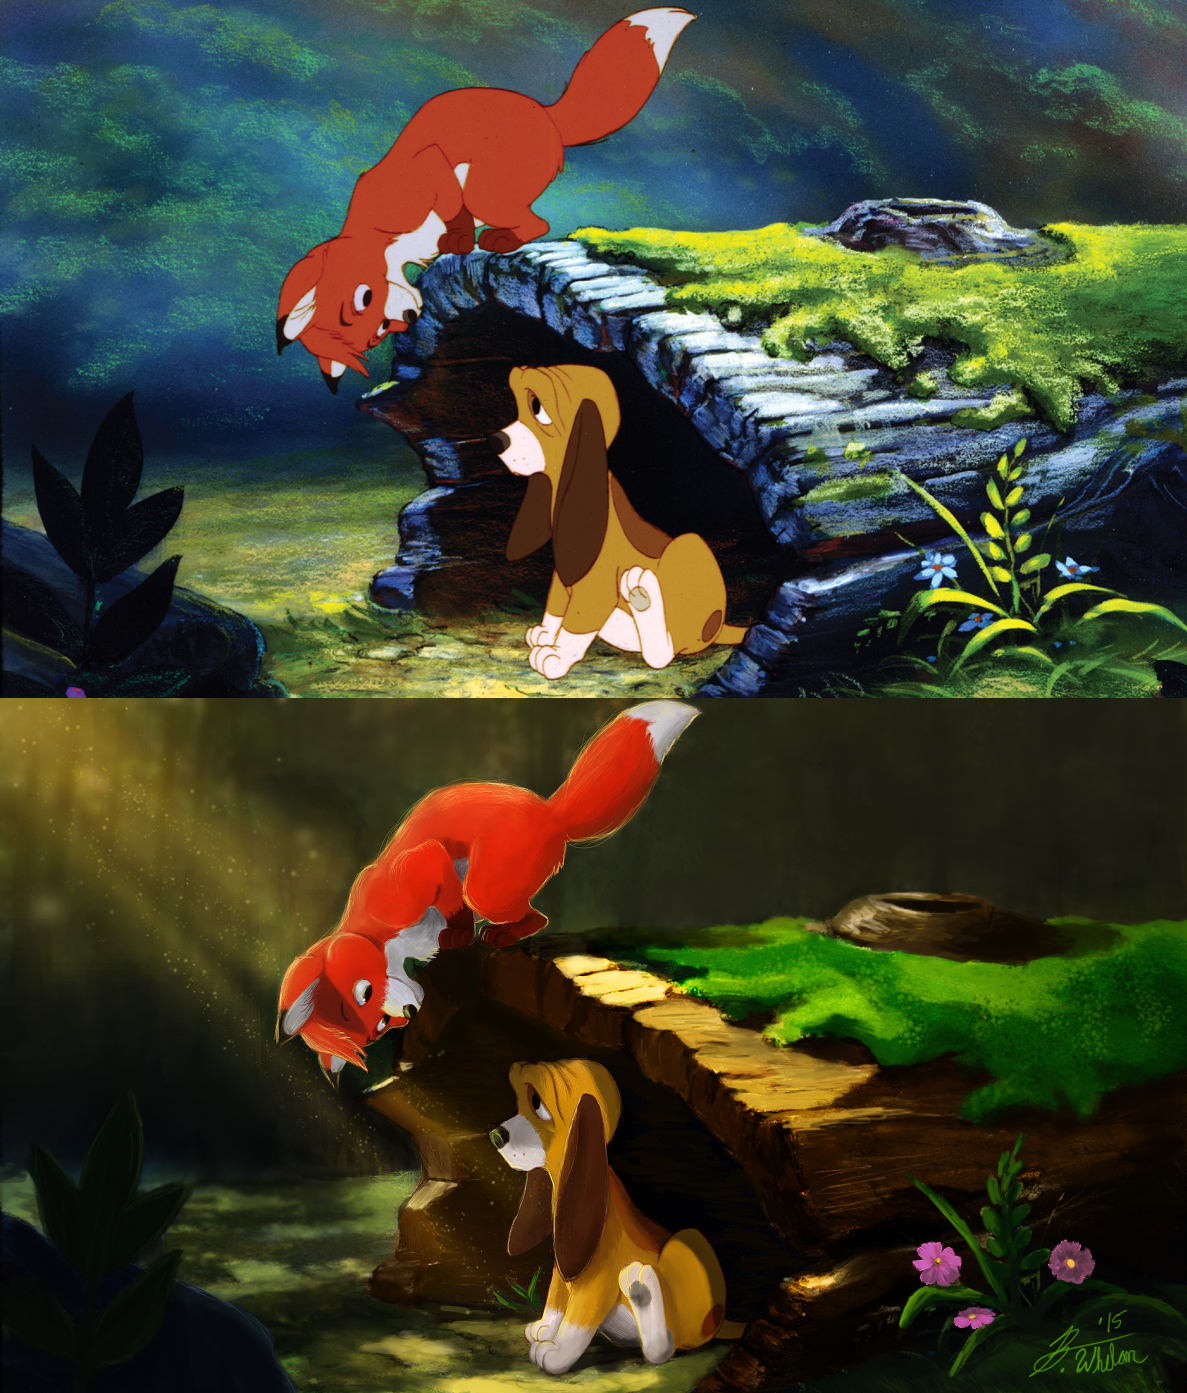 Tod and Copper (The Fox and the Hound) (Before and After)